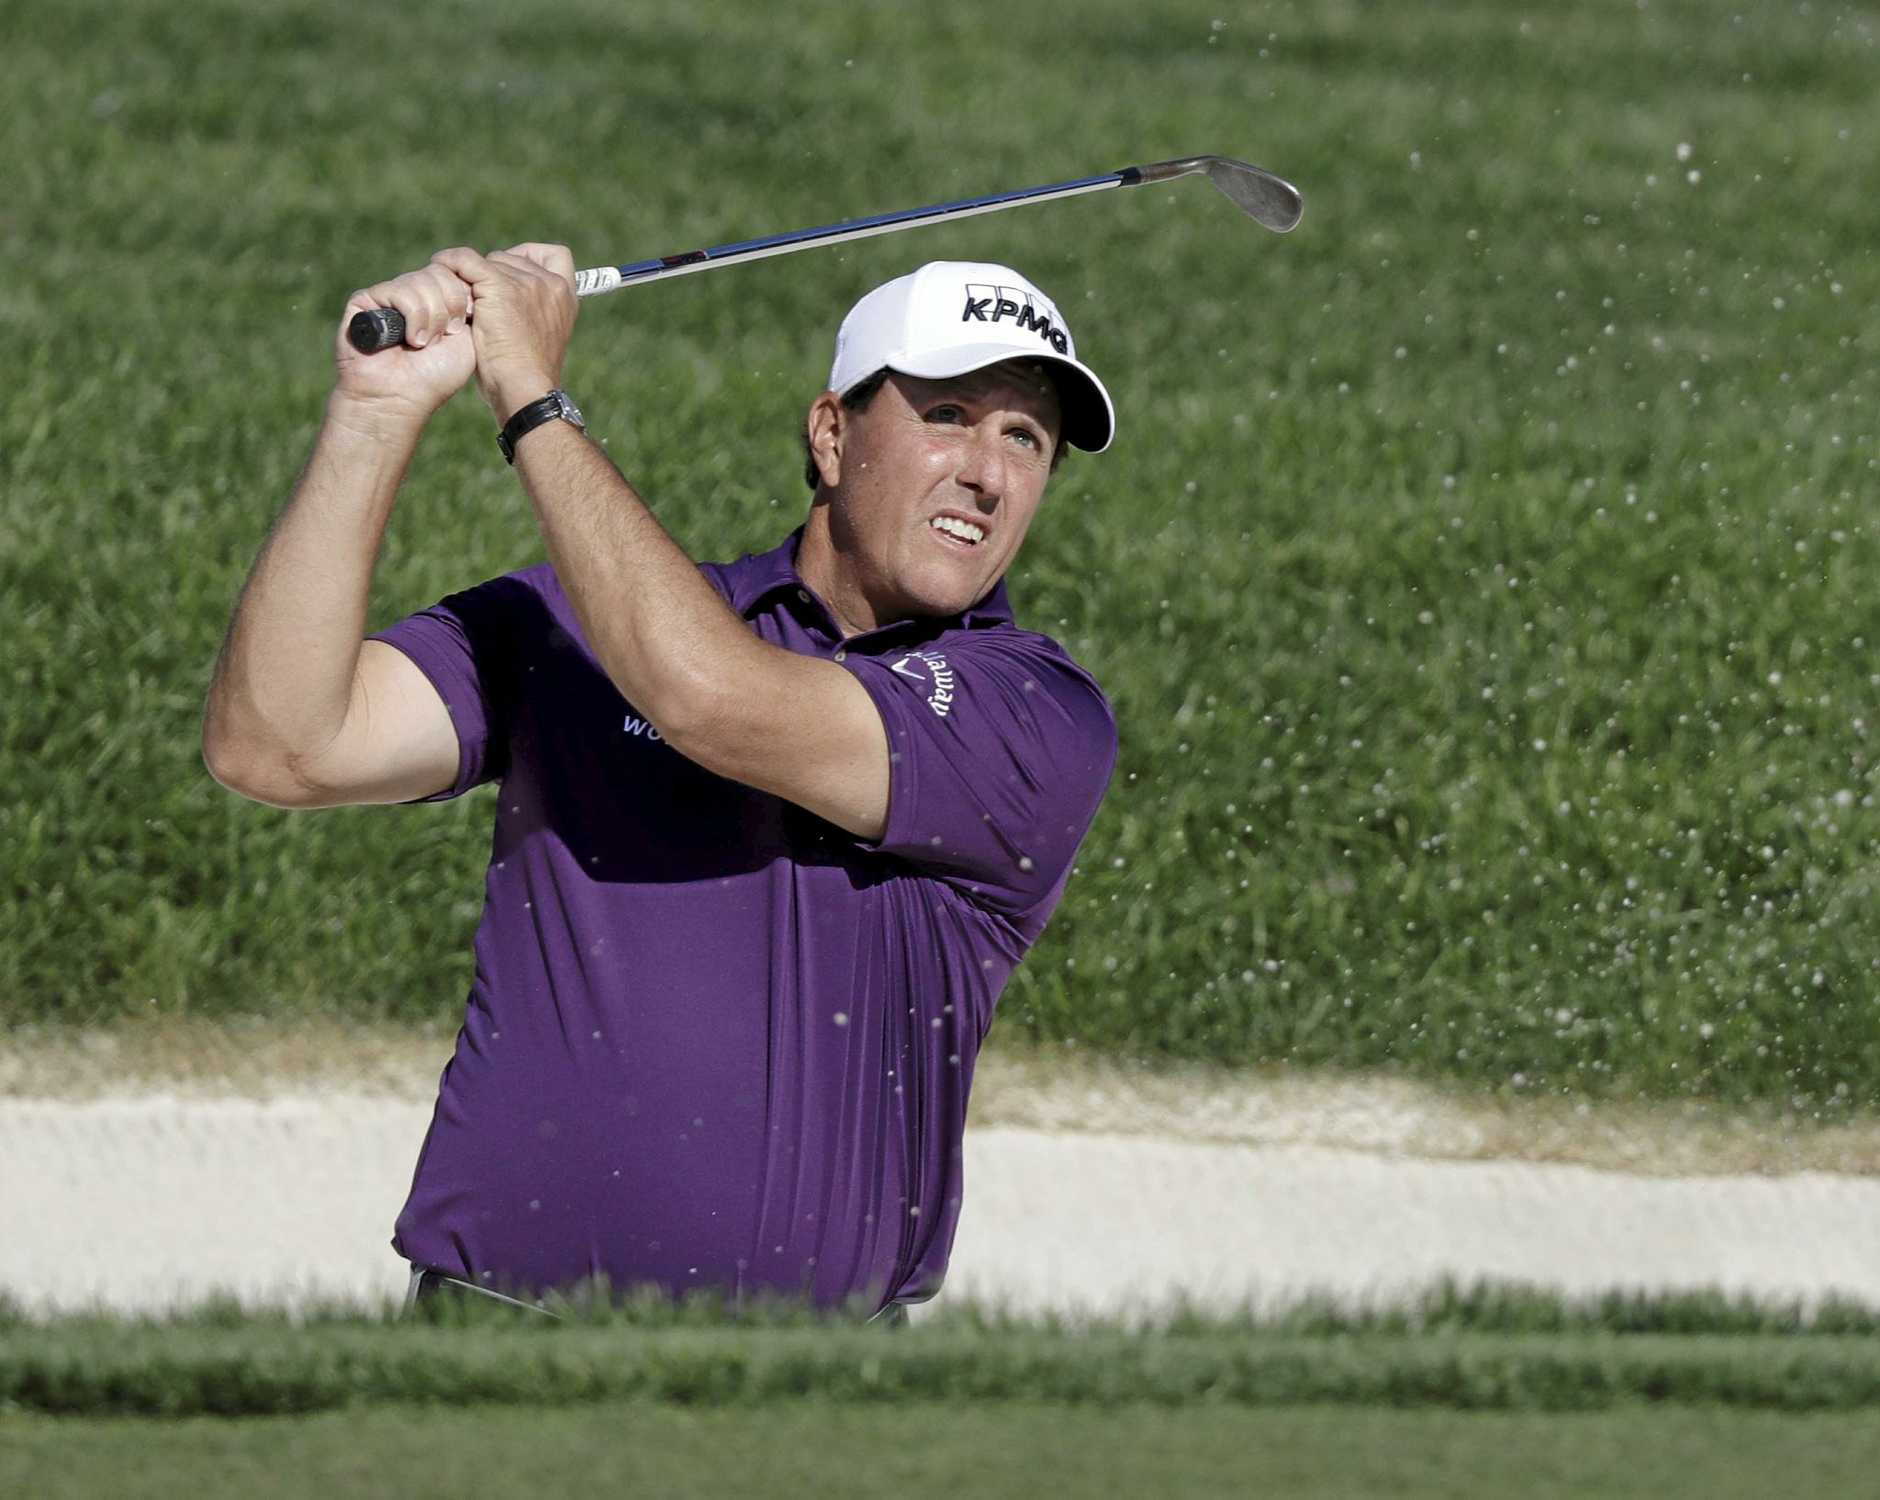 Phil Mickelson will be aiming to conquer Shinnecock Hills. (AP Photo/Darron Cummings)